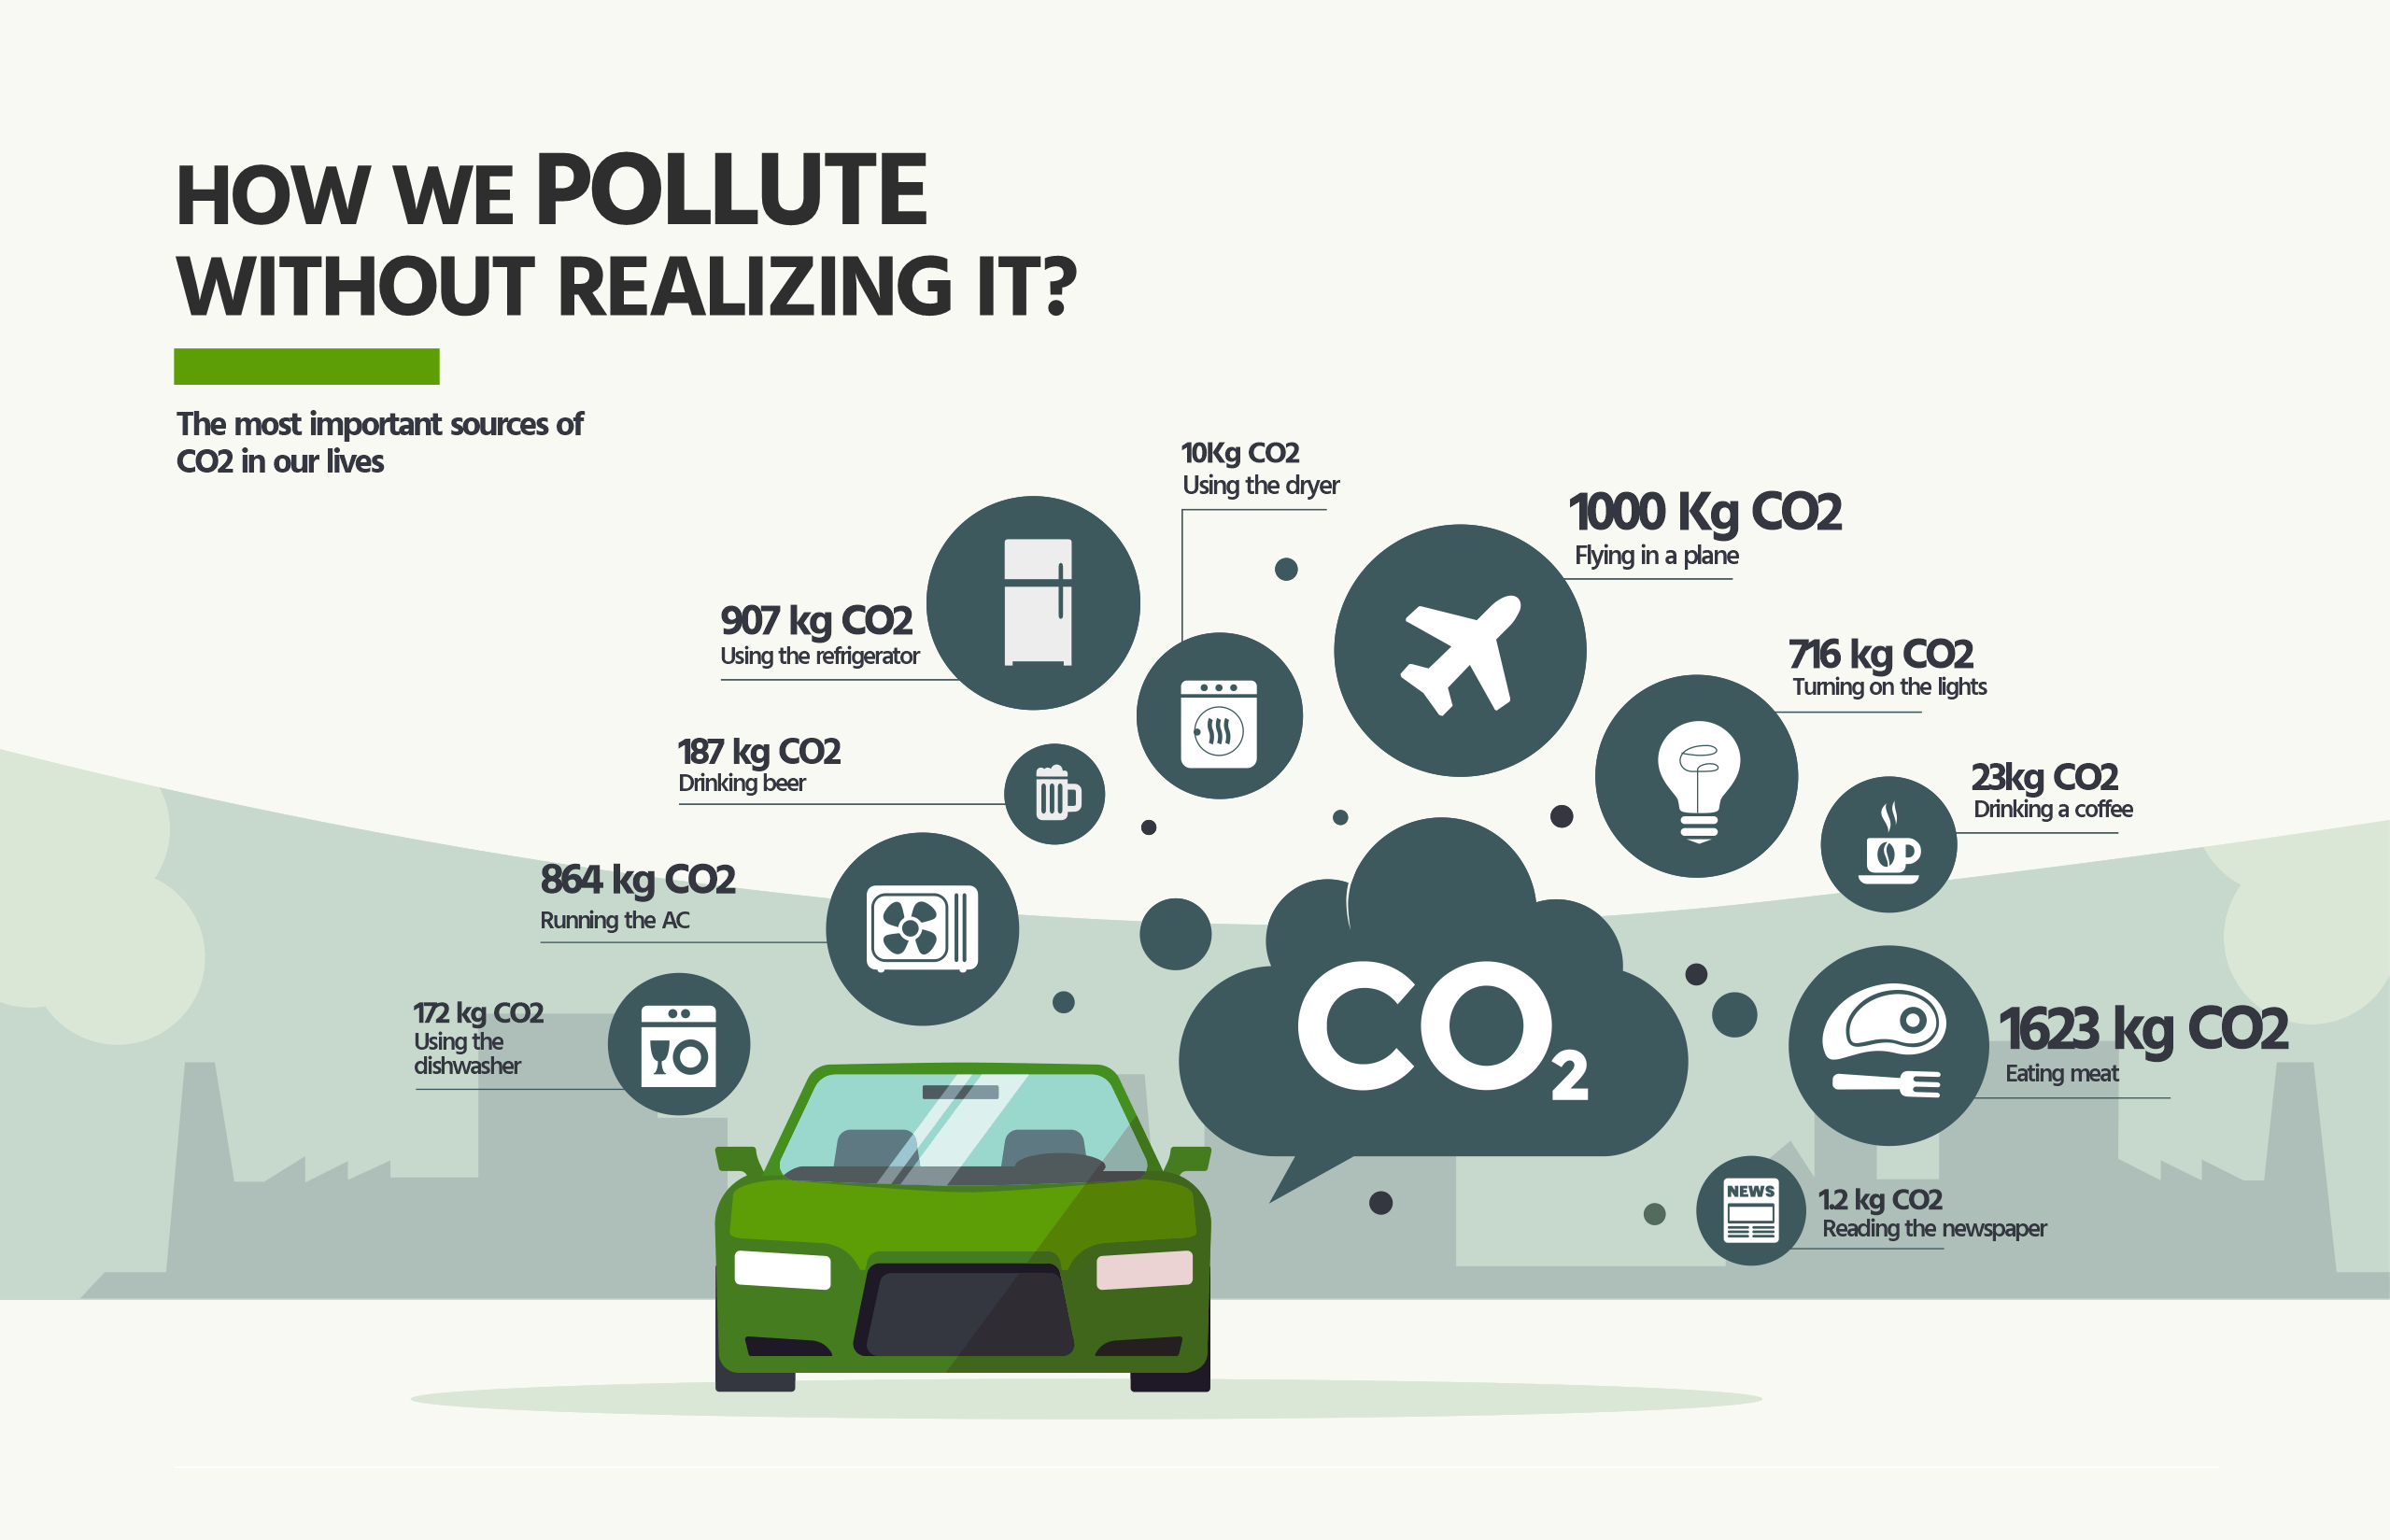 Pollute - sources of CO2